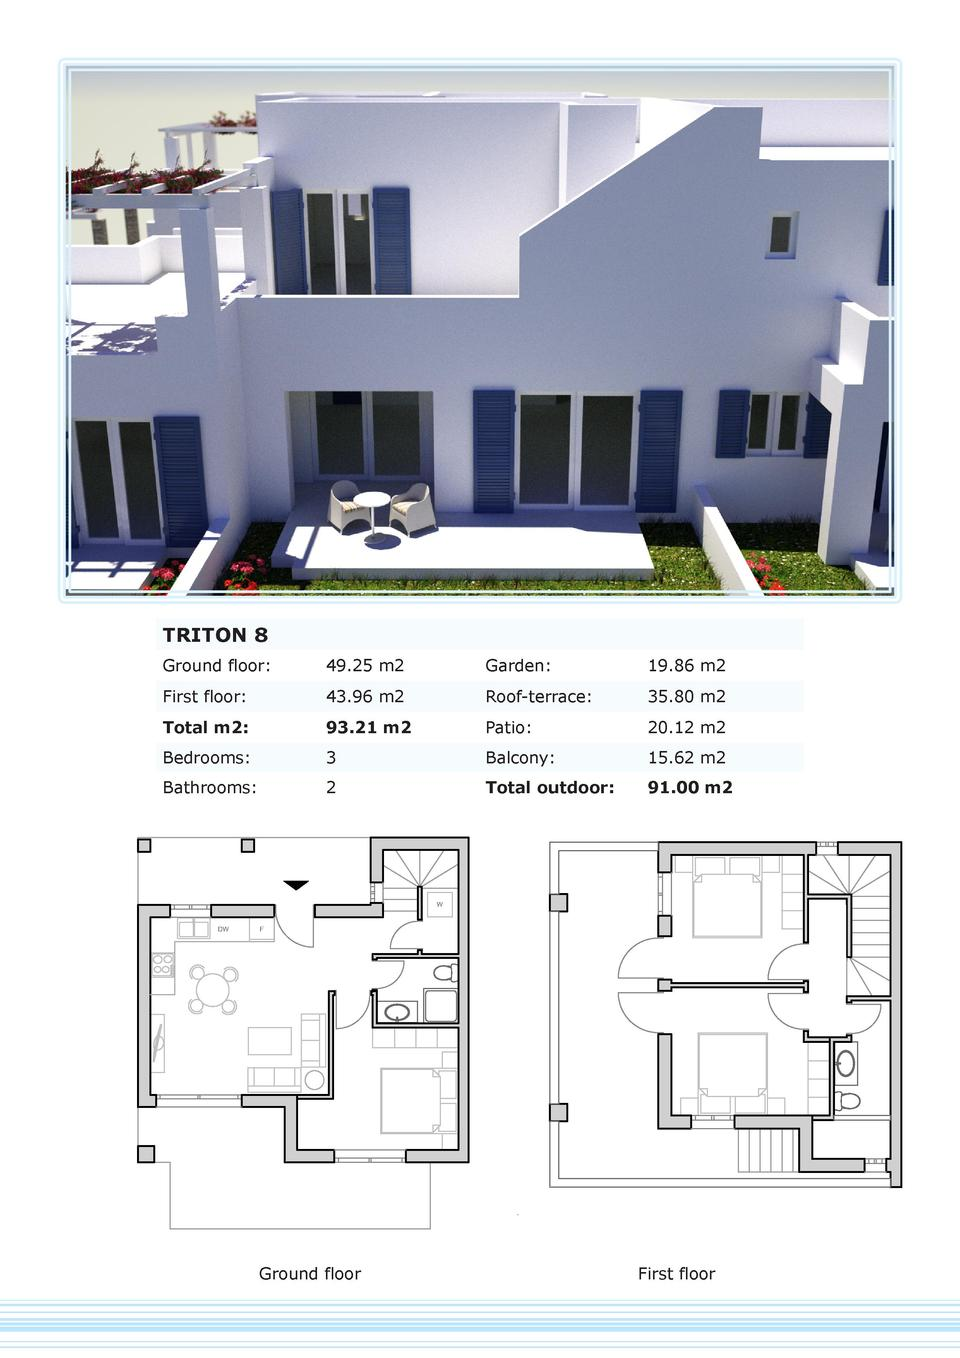 TRITON 8 Ground floor   49.25 m2  Garden   19.86 m2  First floor   43.96 m2  Roof-terrace   35.80 m2  Total m2   93.21 m2 ...